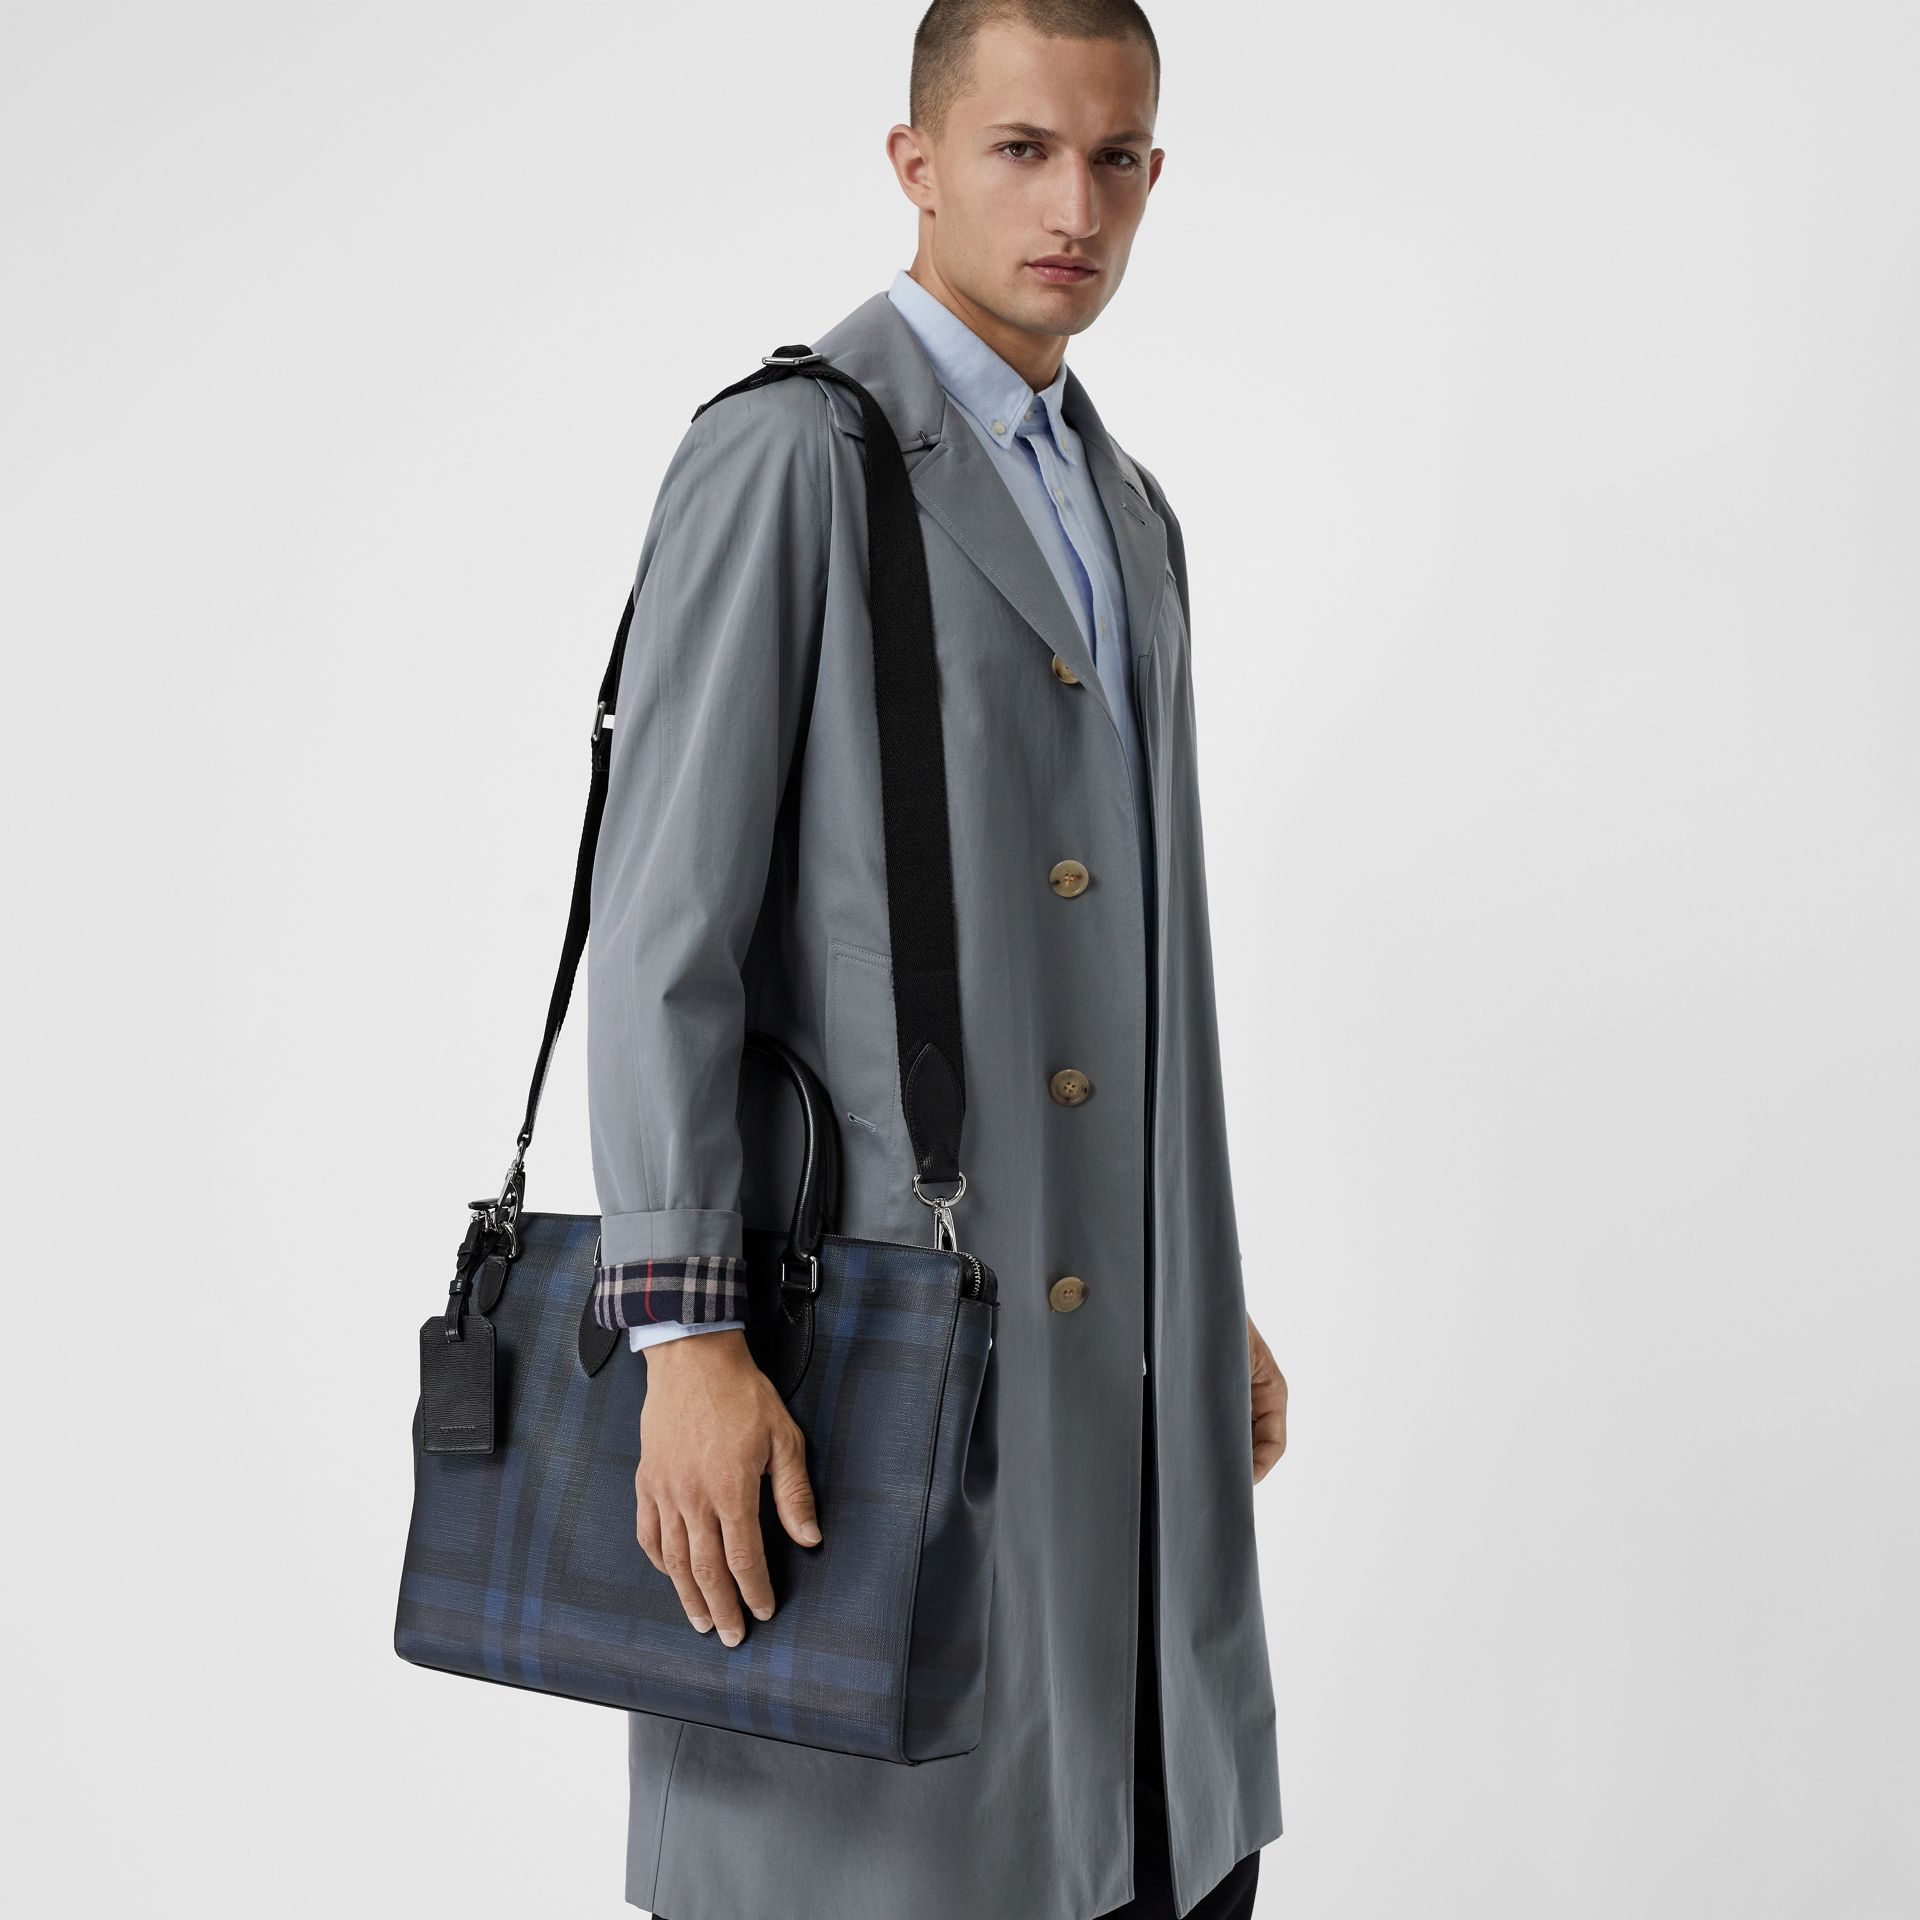 Large London Check Briefcase in Navy/black - Men | Burberry Australia - gallery image 3